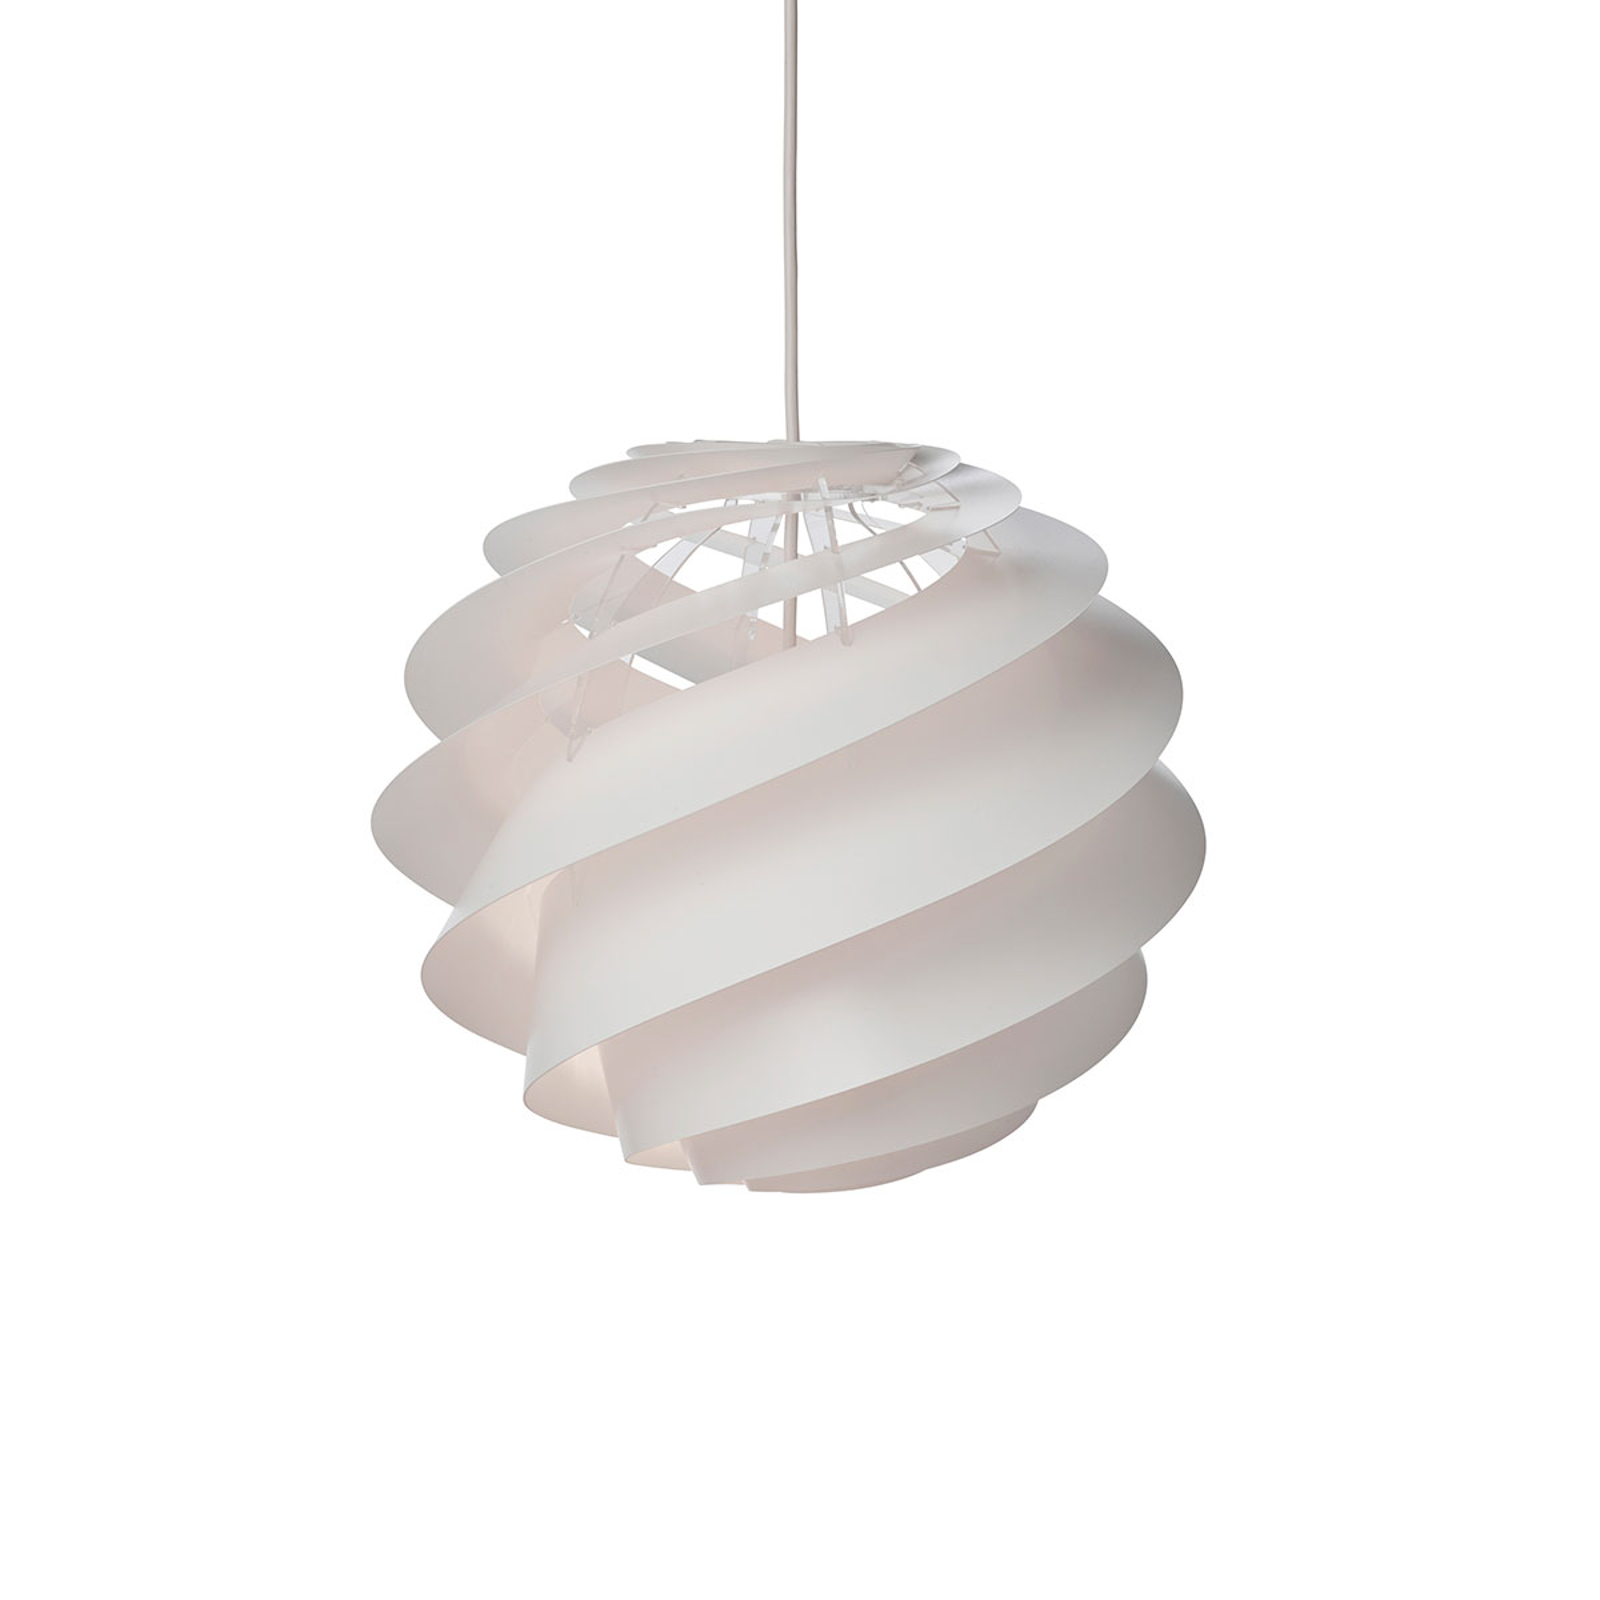 LE KLINT Swirl 3 Small - hanglamp in wit